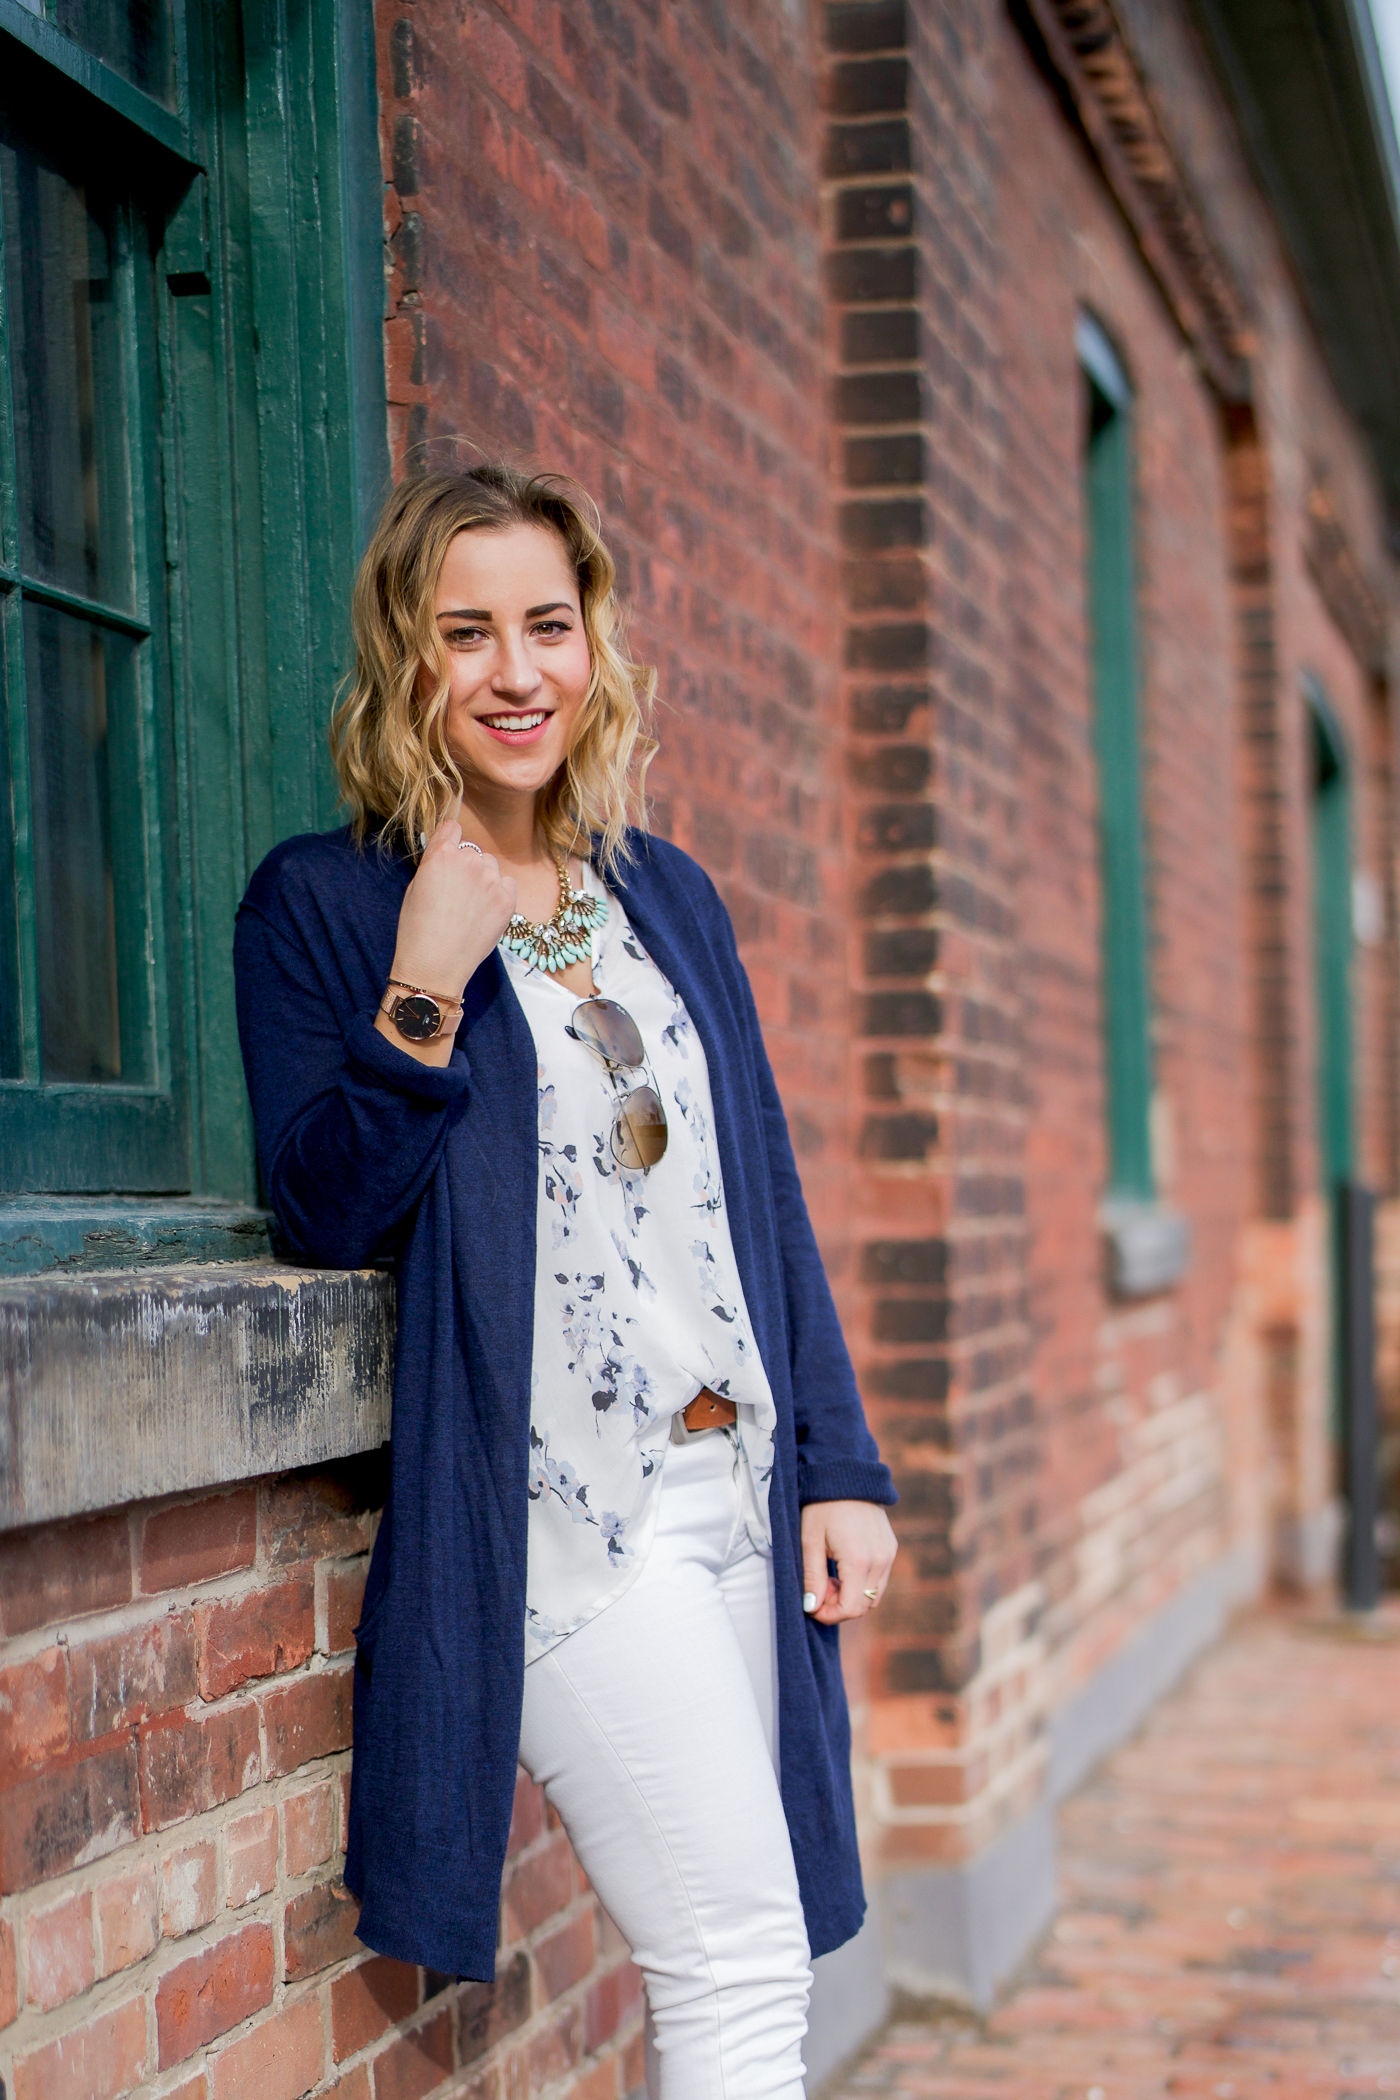 Toronto fashion and lifestyle blogger, Jackie of Something About That, wearing a spring outfit with white jeans from Gap, a floral top from Gentle Fawn and a navy cardigan from Joe Fresh